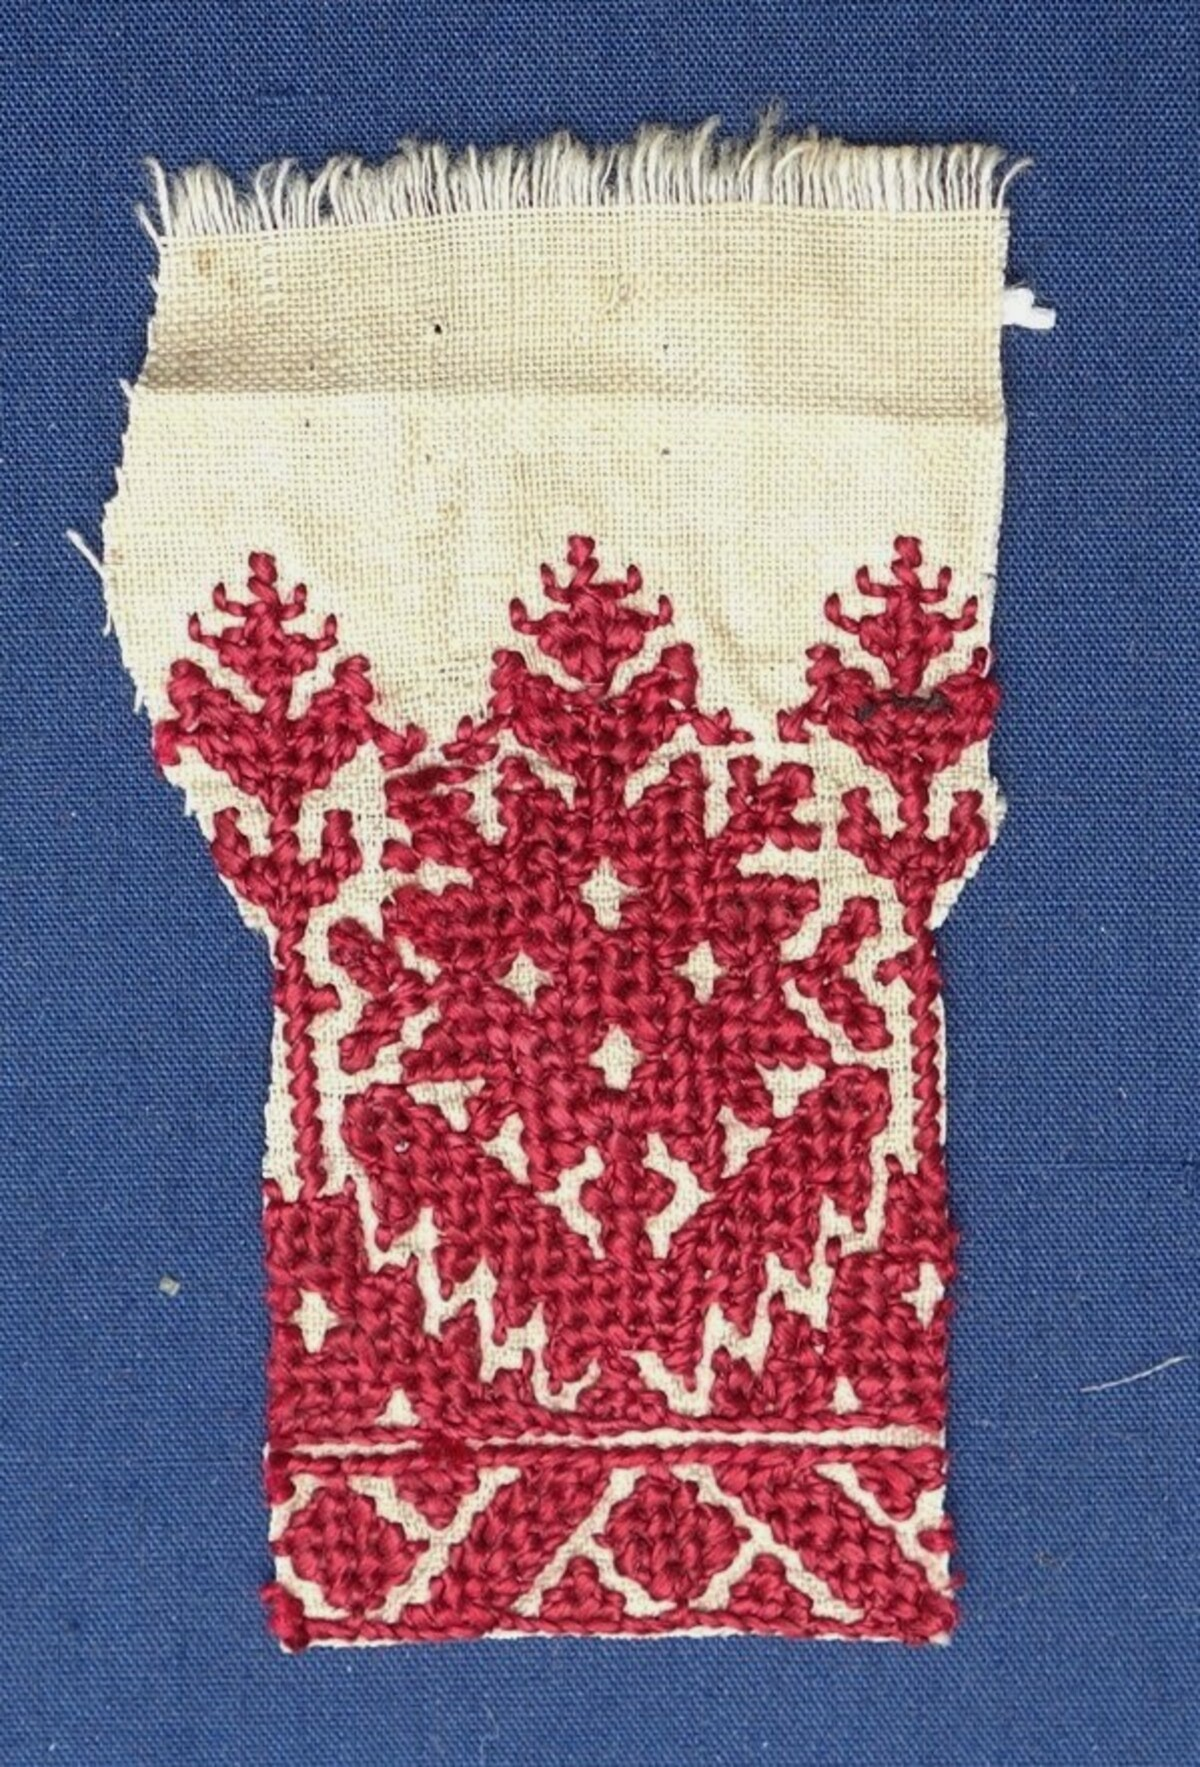 Embroidery sample from Fes, Morocco, 20th century (TRC 2019.1694).